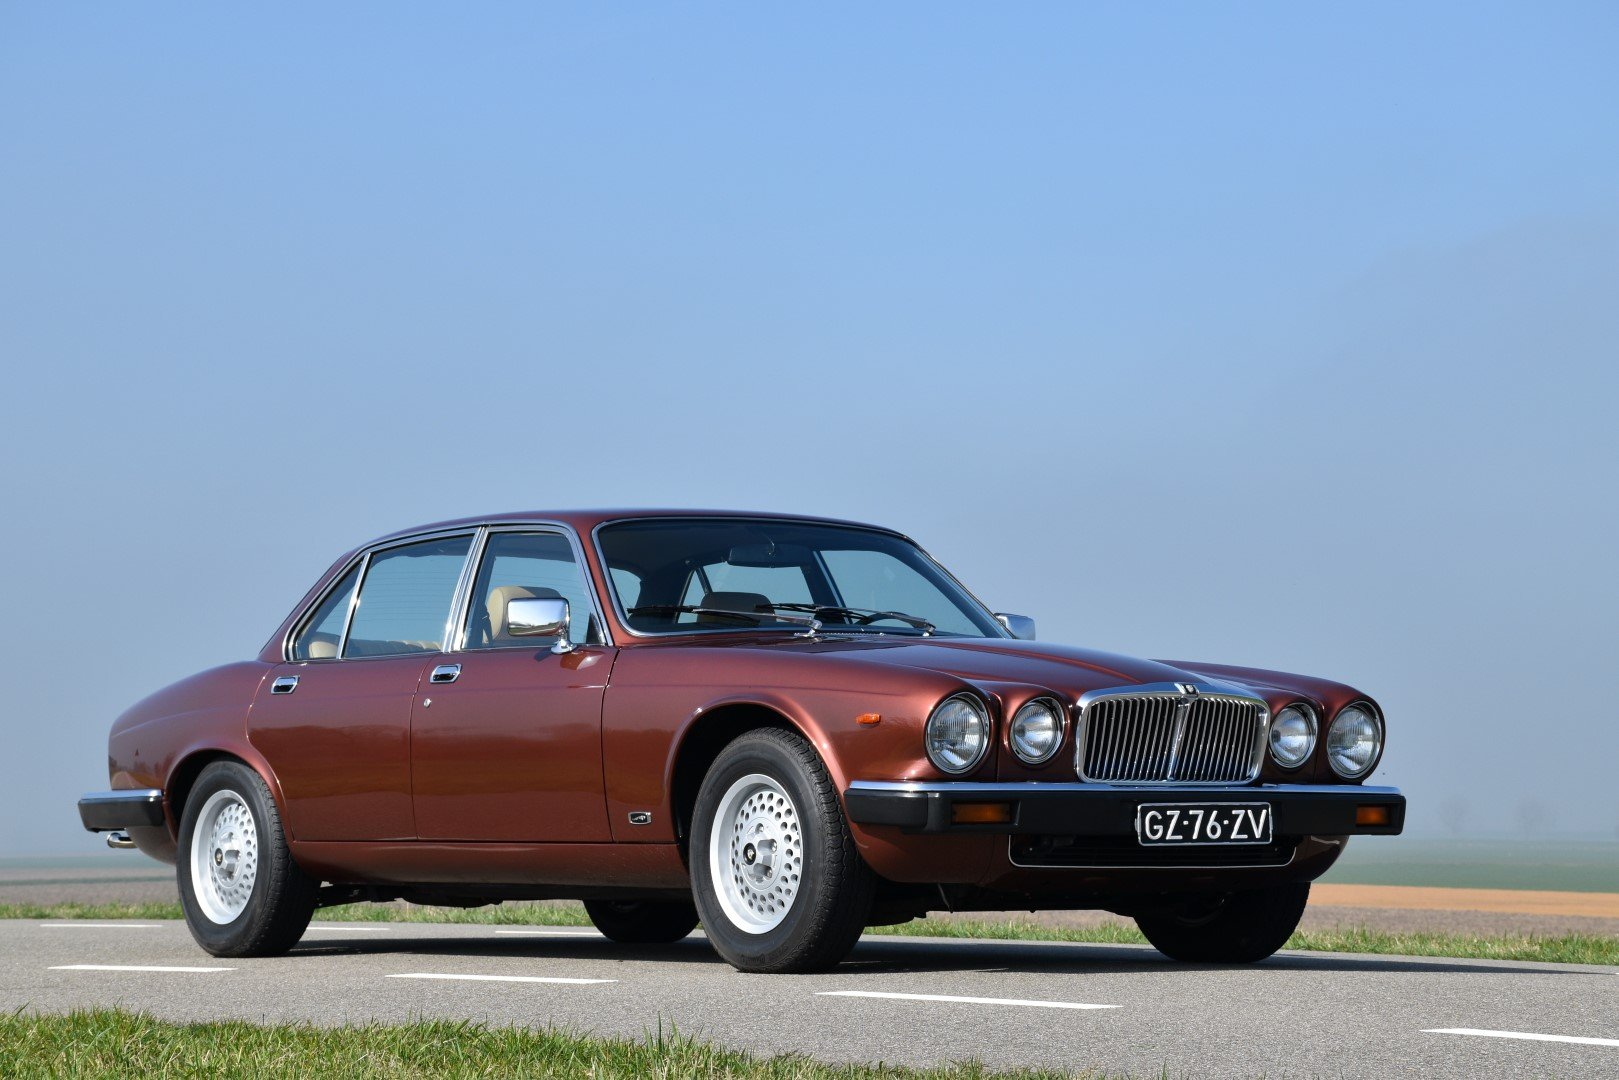 1981 Jaguar XJ6 series III 4.2 For Sale (picture 1 of 6)